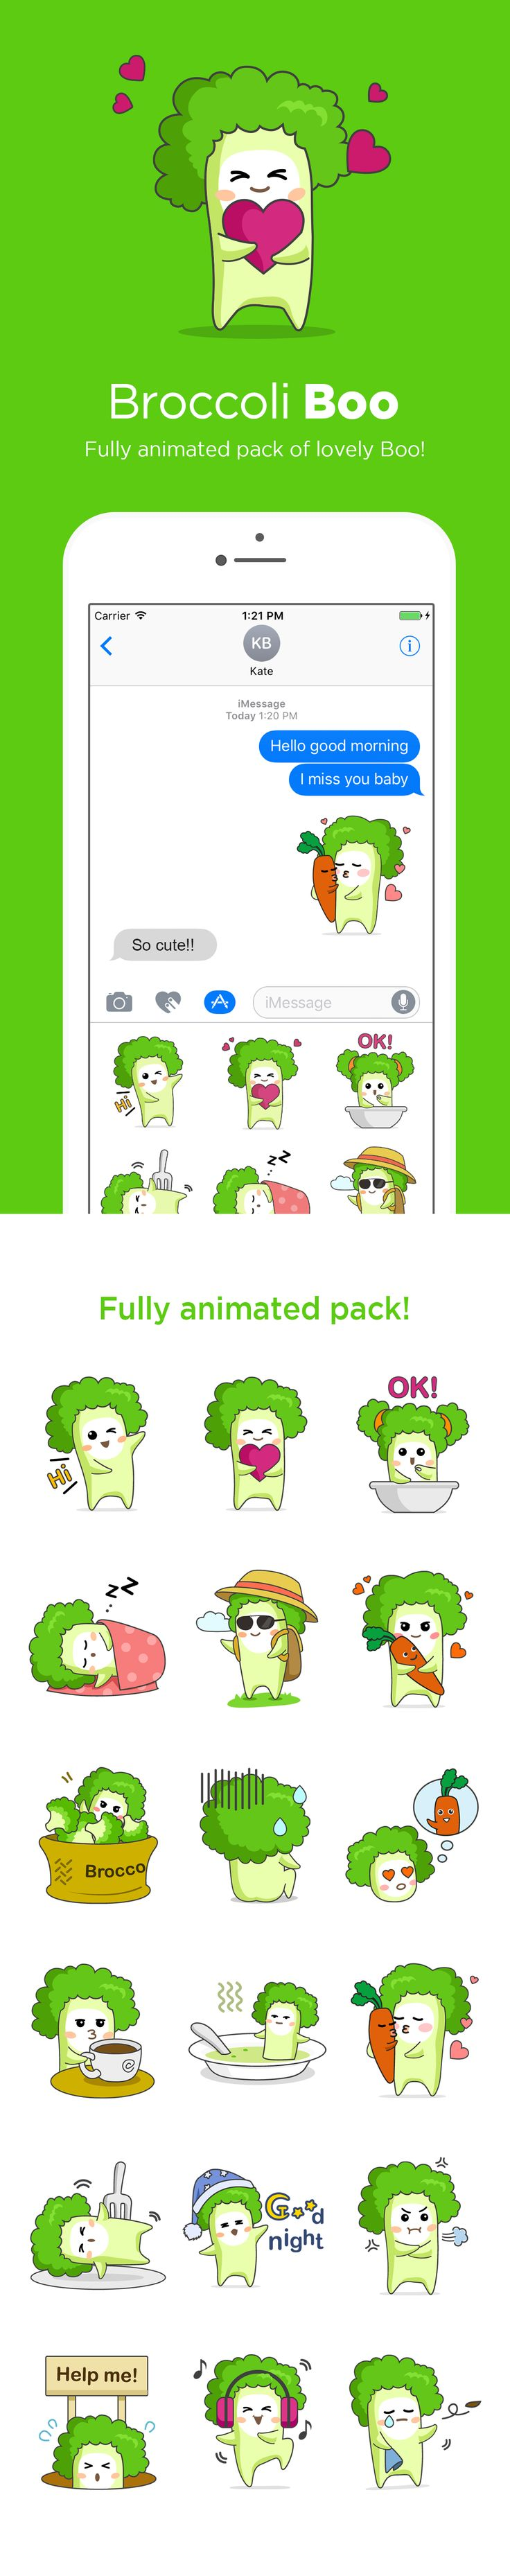 A sticker 'broccoli boo' for imessage app. Newly launched on itunes app store.